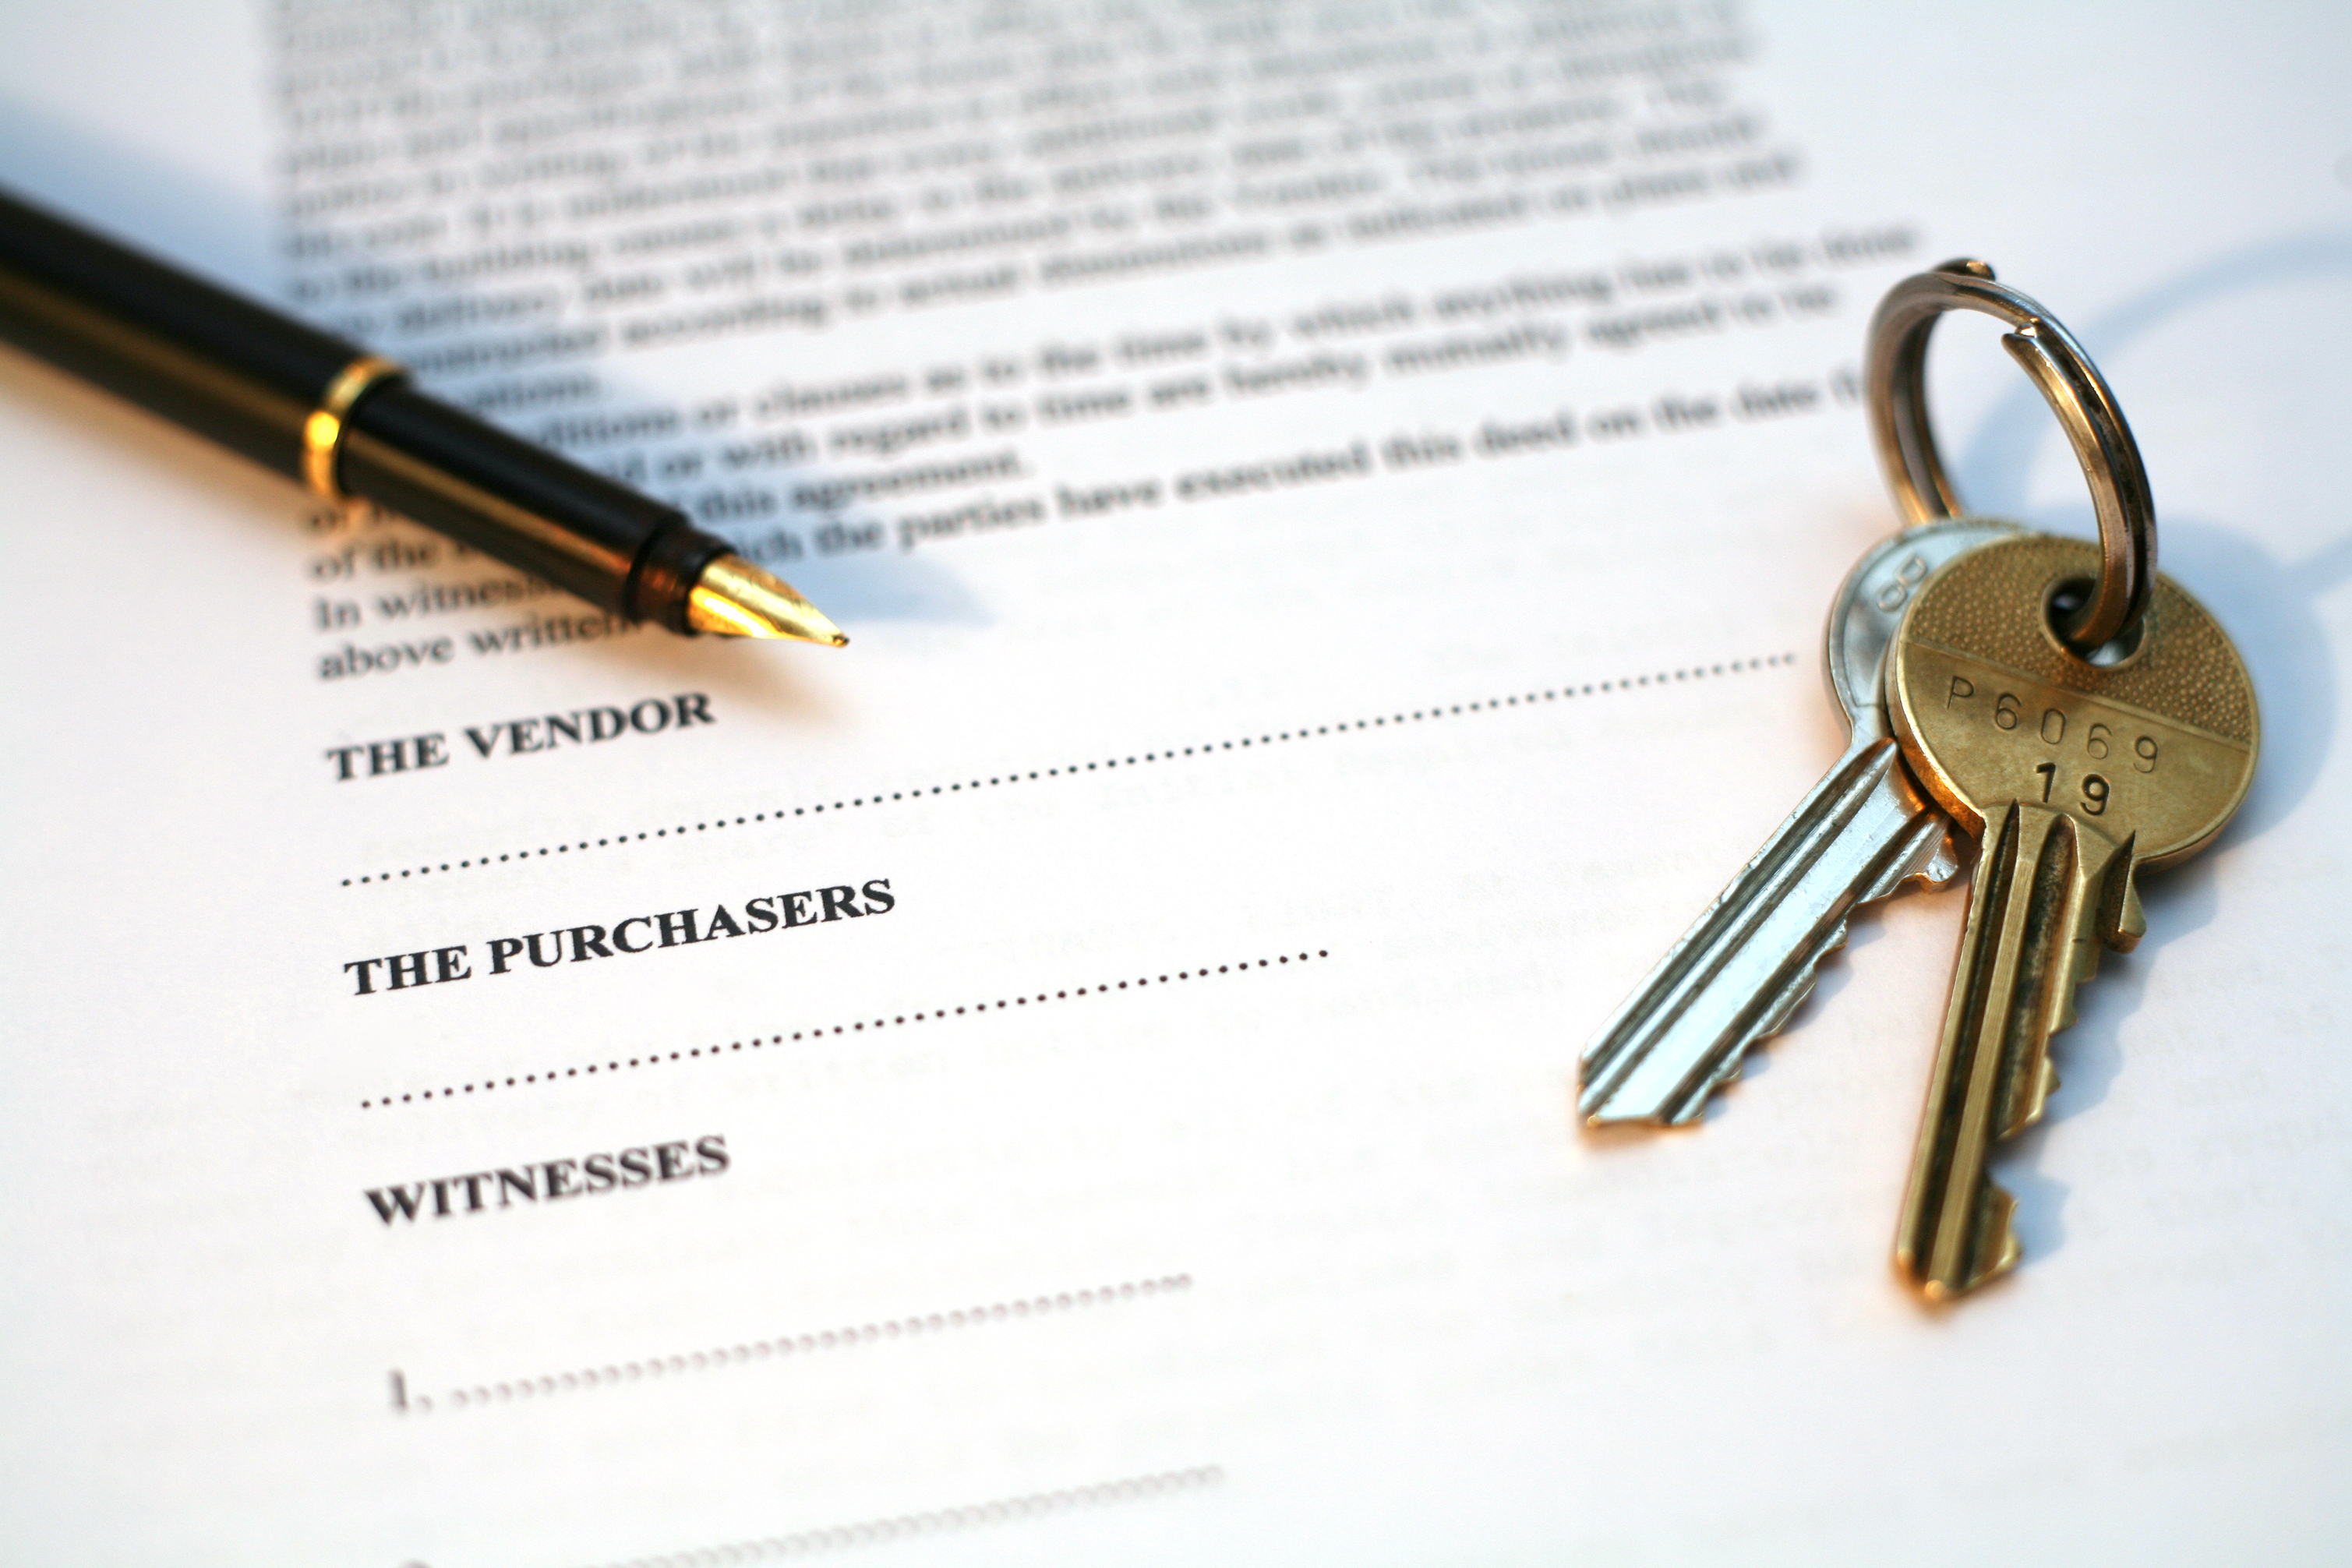 legal document for sale of real estate property in europe, with a gold-nibbed fountain pen and house keys